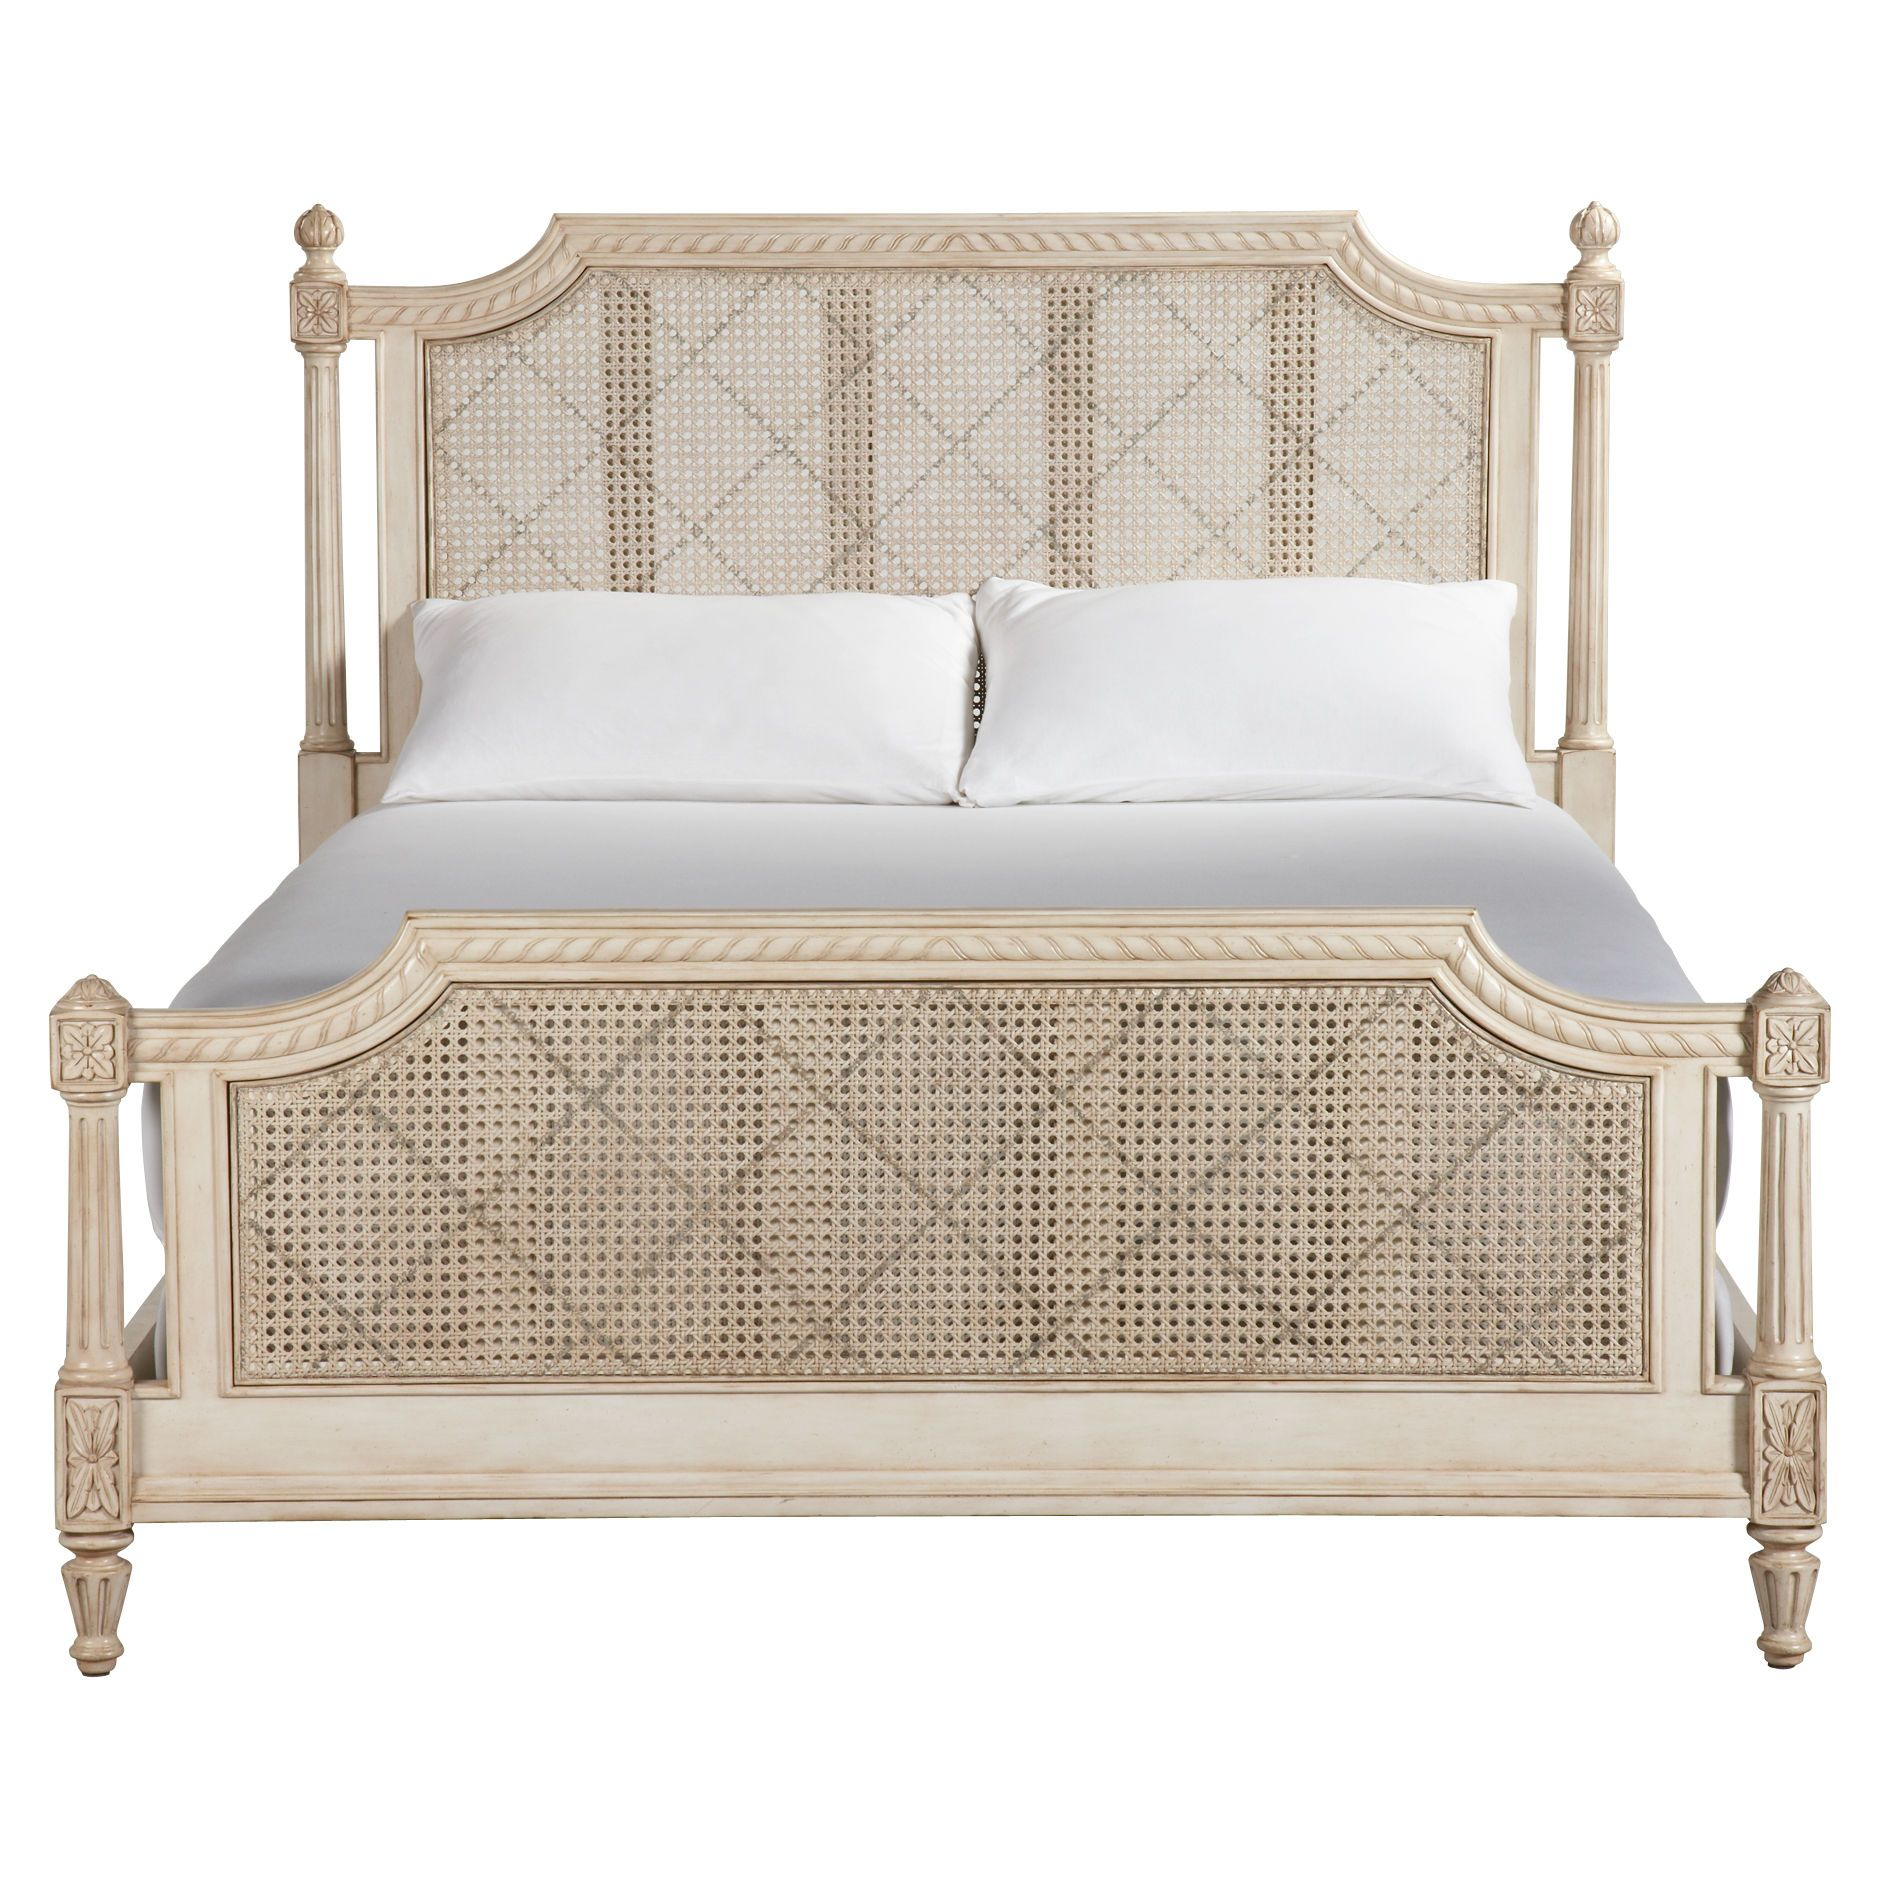 Elise Bed Ethan Allen Us Master Bedroom Pinterest # Muebles Costera